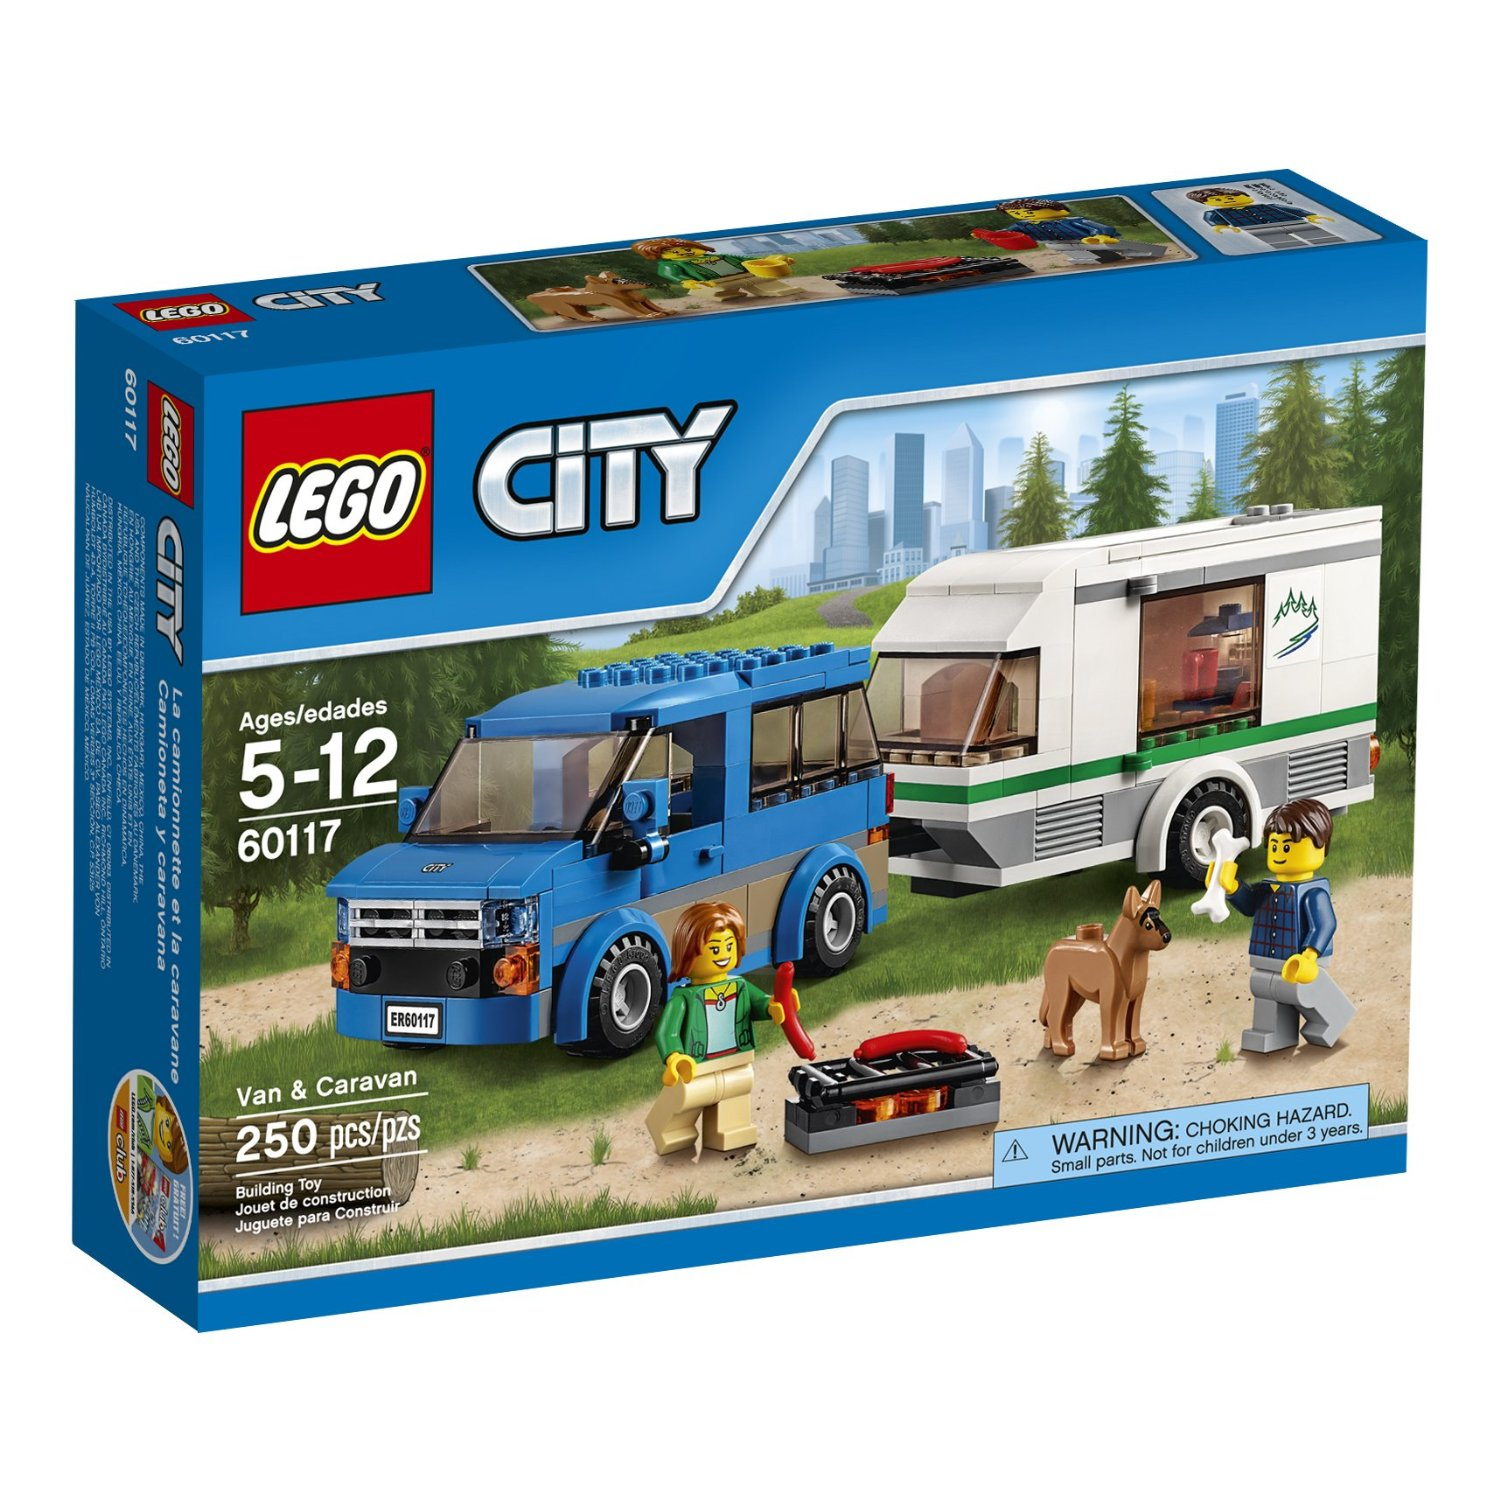 Magformers and LEGO Deals on Amazon